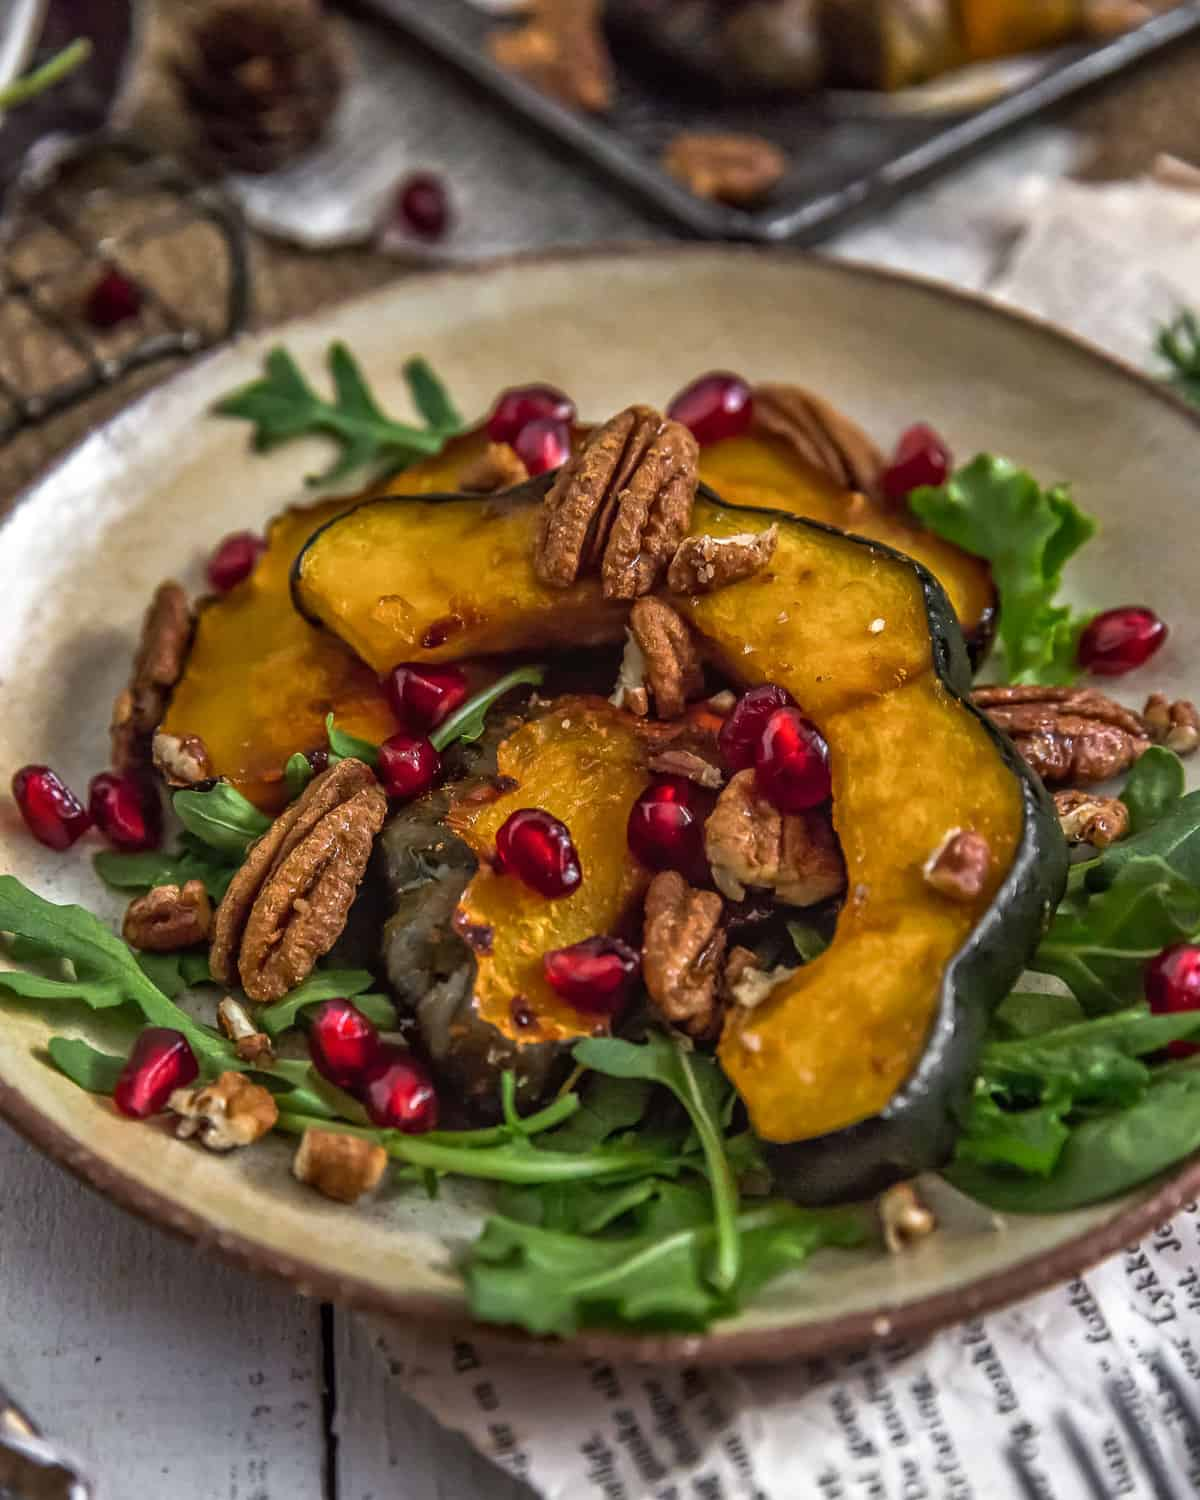 Side of Roasted Maple Glazed Acorn Squash with Cinnamon Pecans